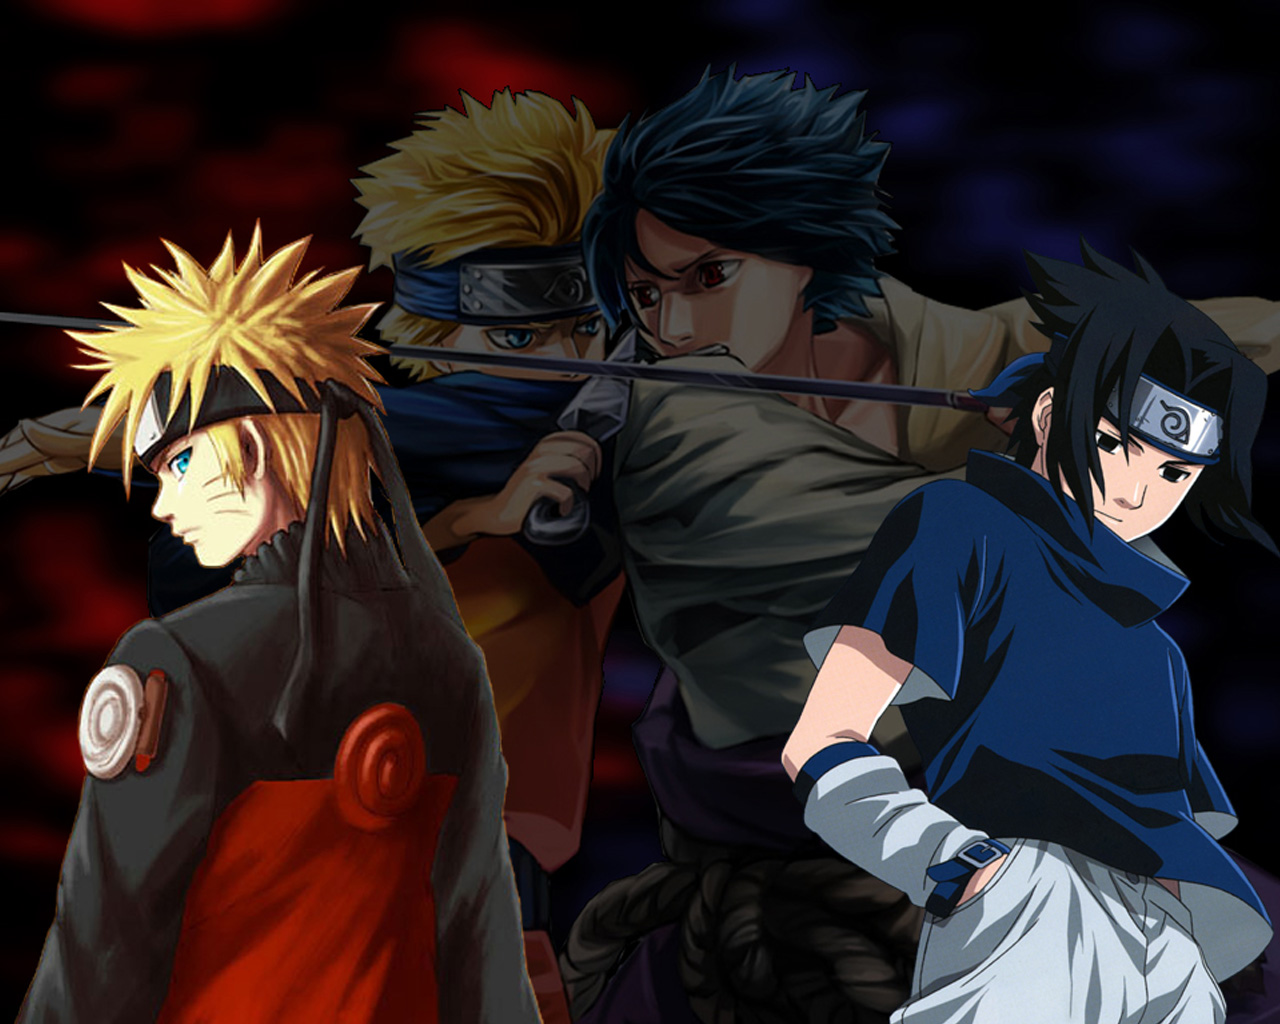 Naruto Manga 698-Naruto Vs Sasuke Batalla Final[Fan Color